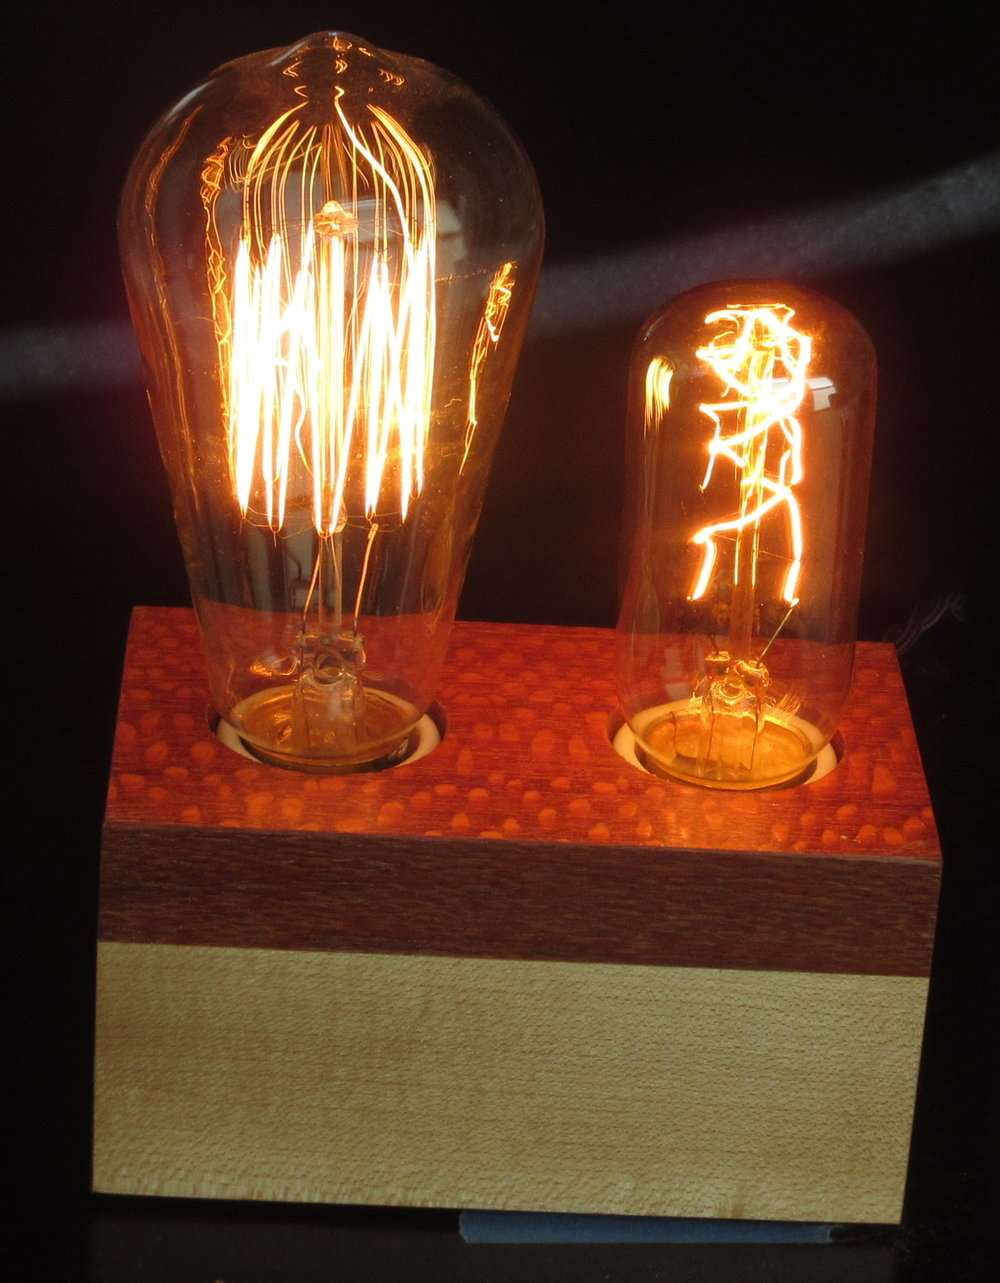 Lacewood and Maple - 2 lamps